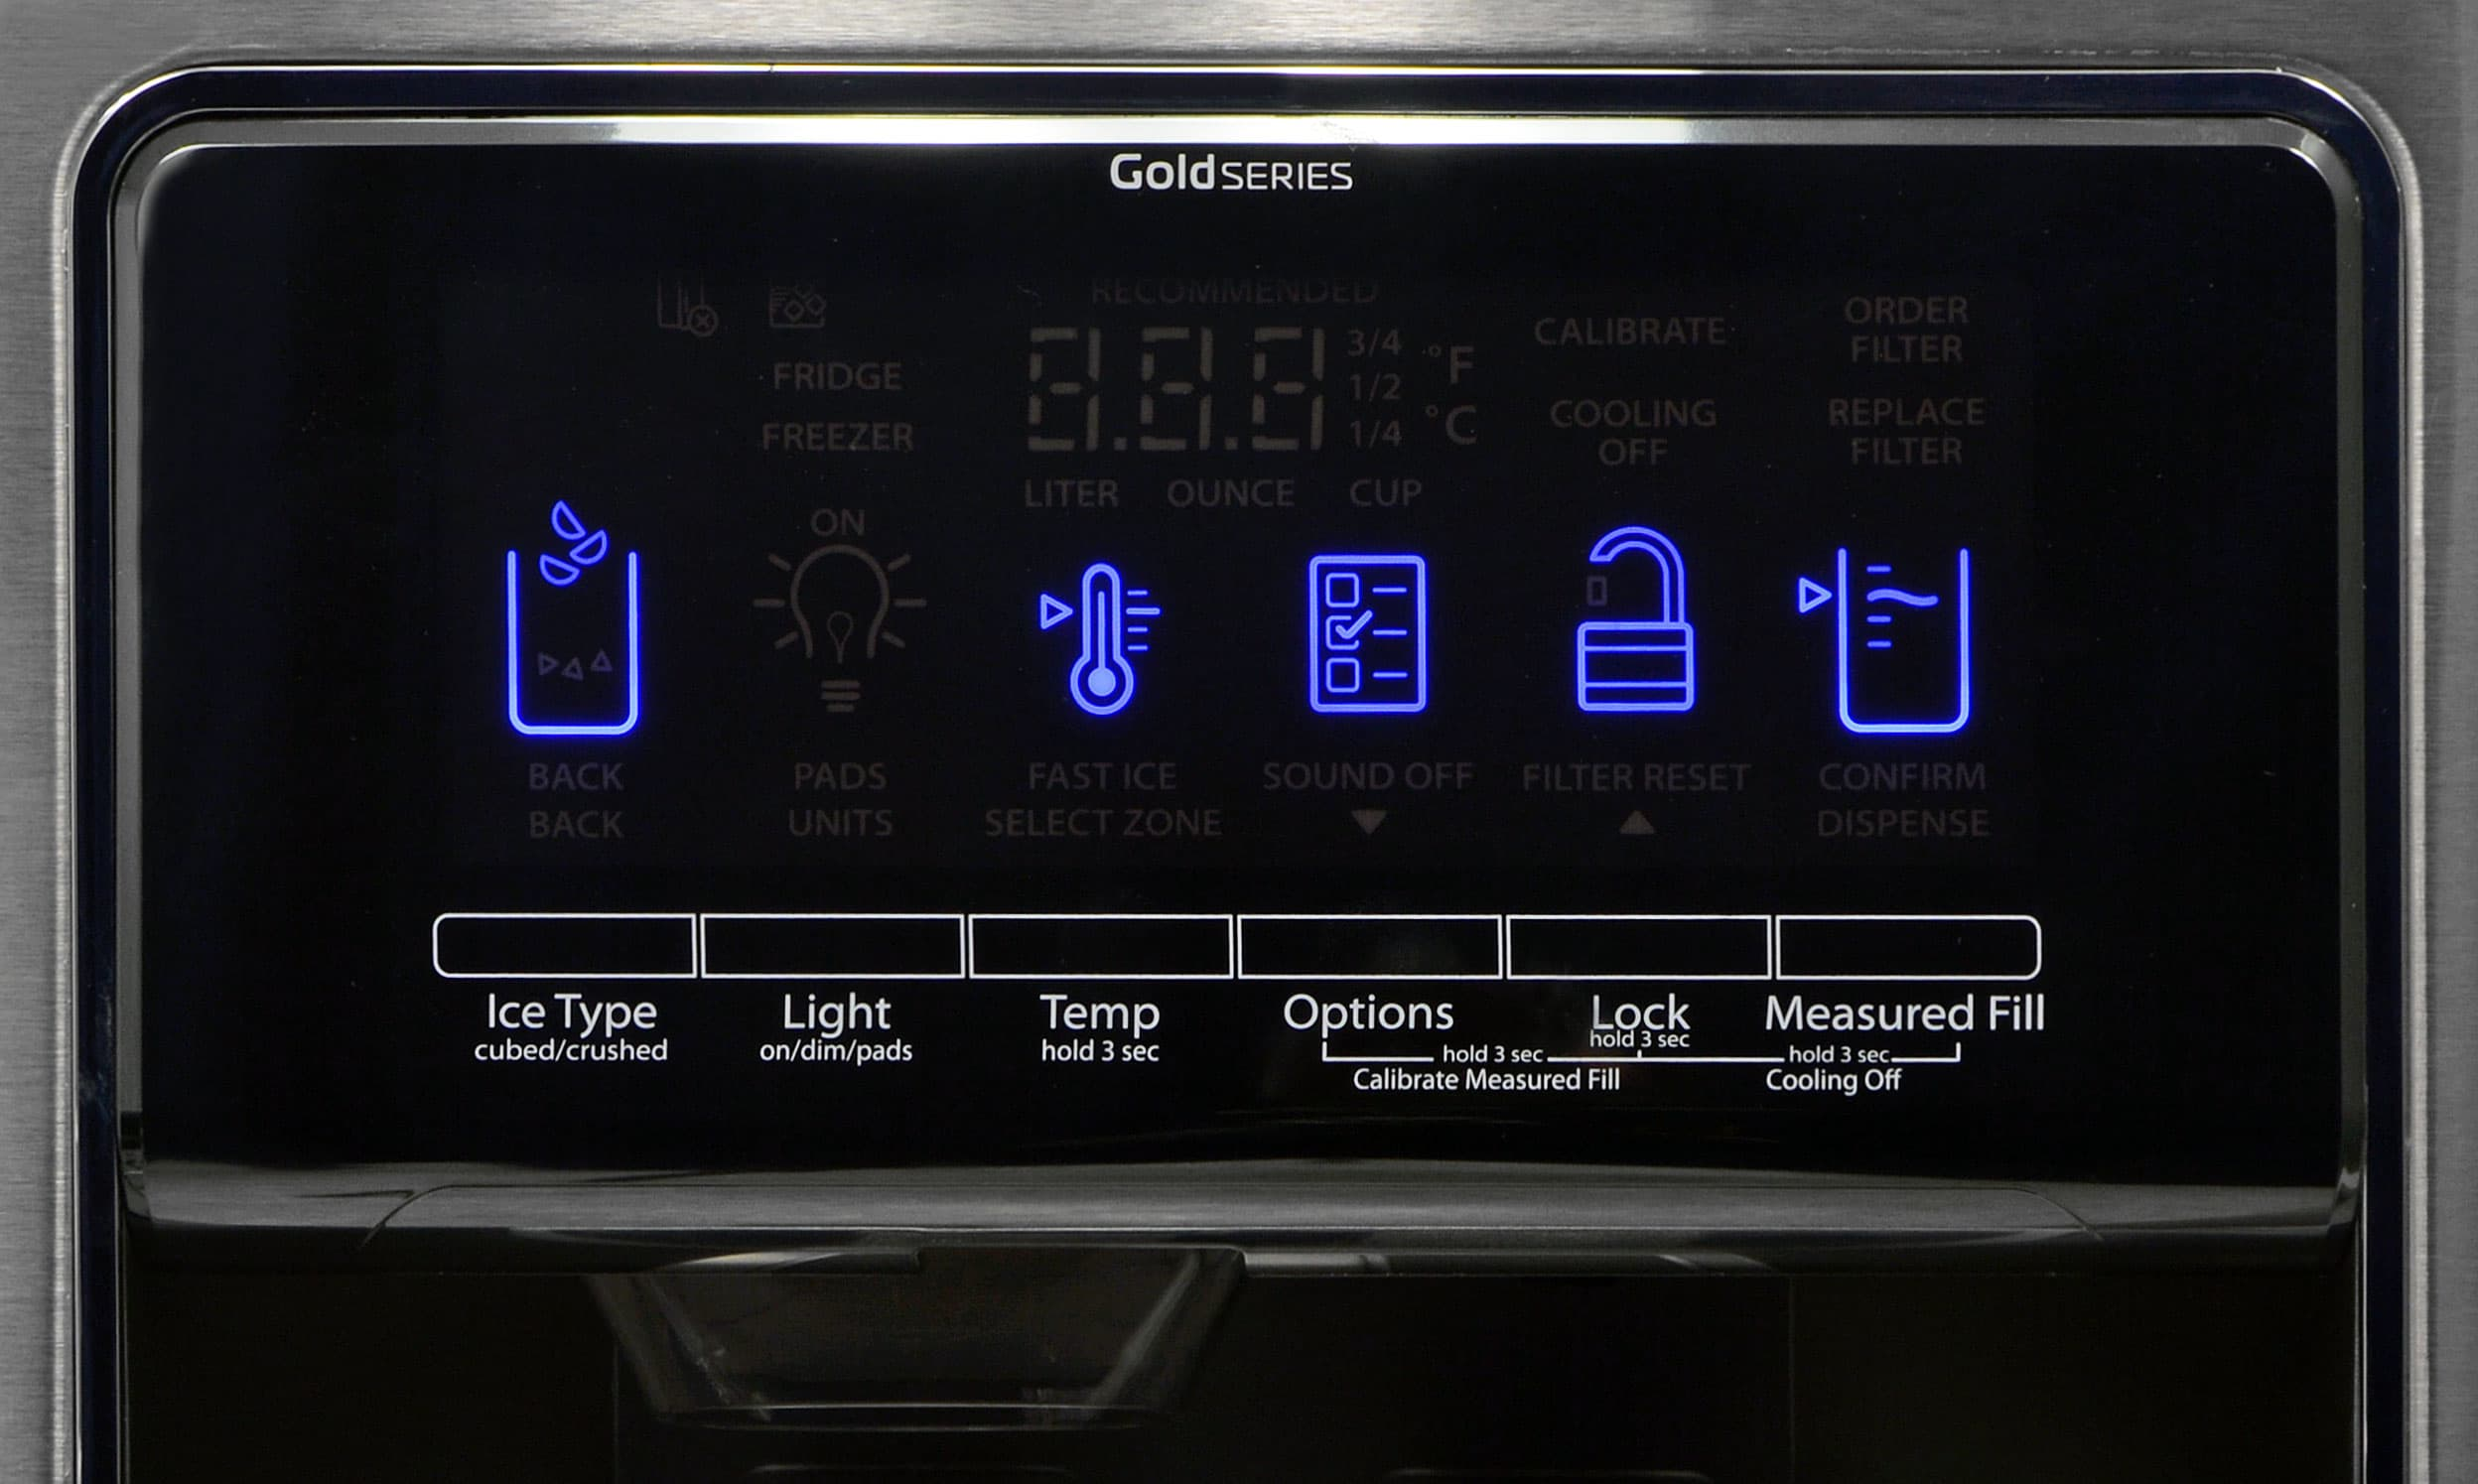 The Whirlpool WRS975SIDM's touchscreen panel is responsive, while the familiar layout hasn't changed.